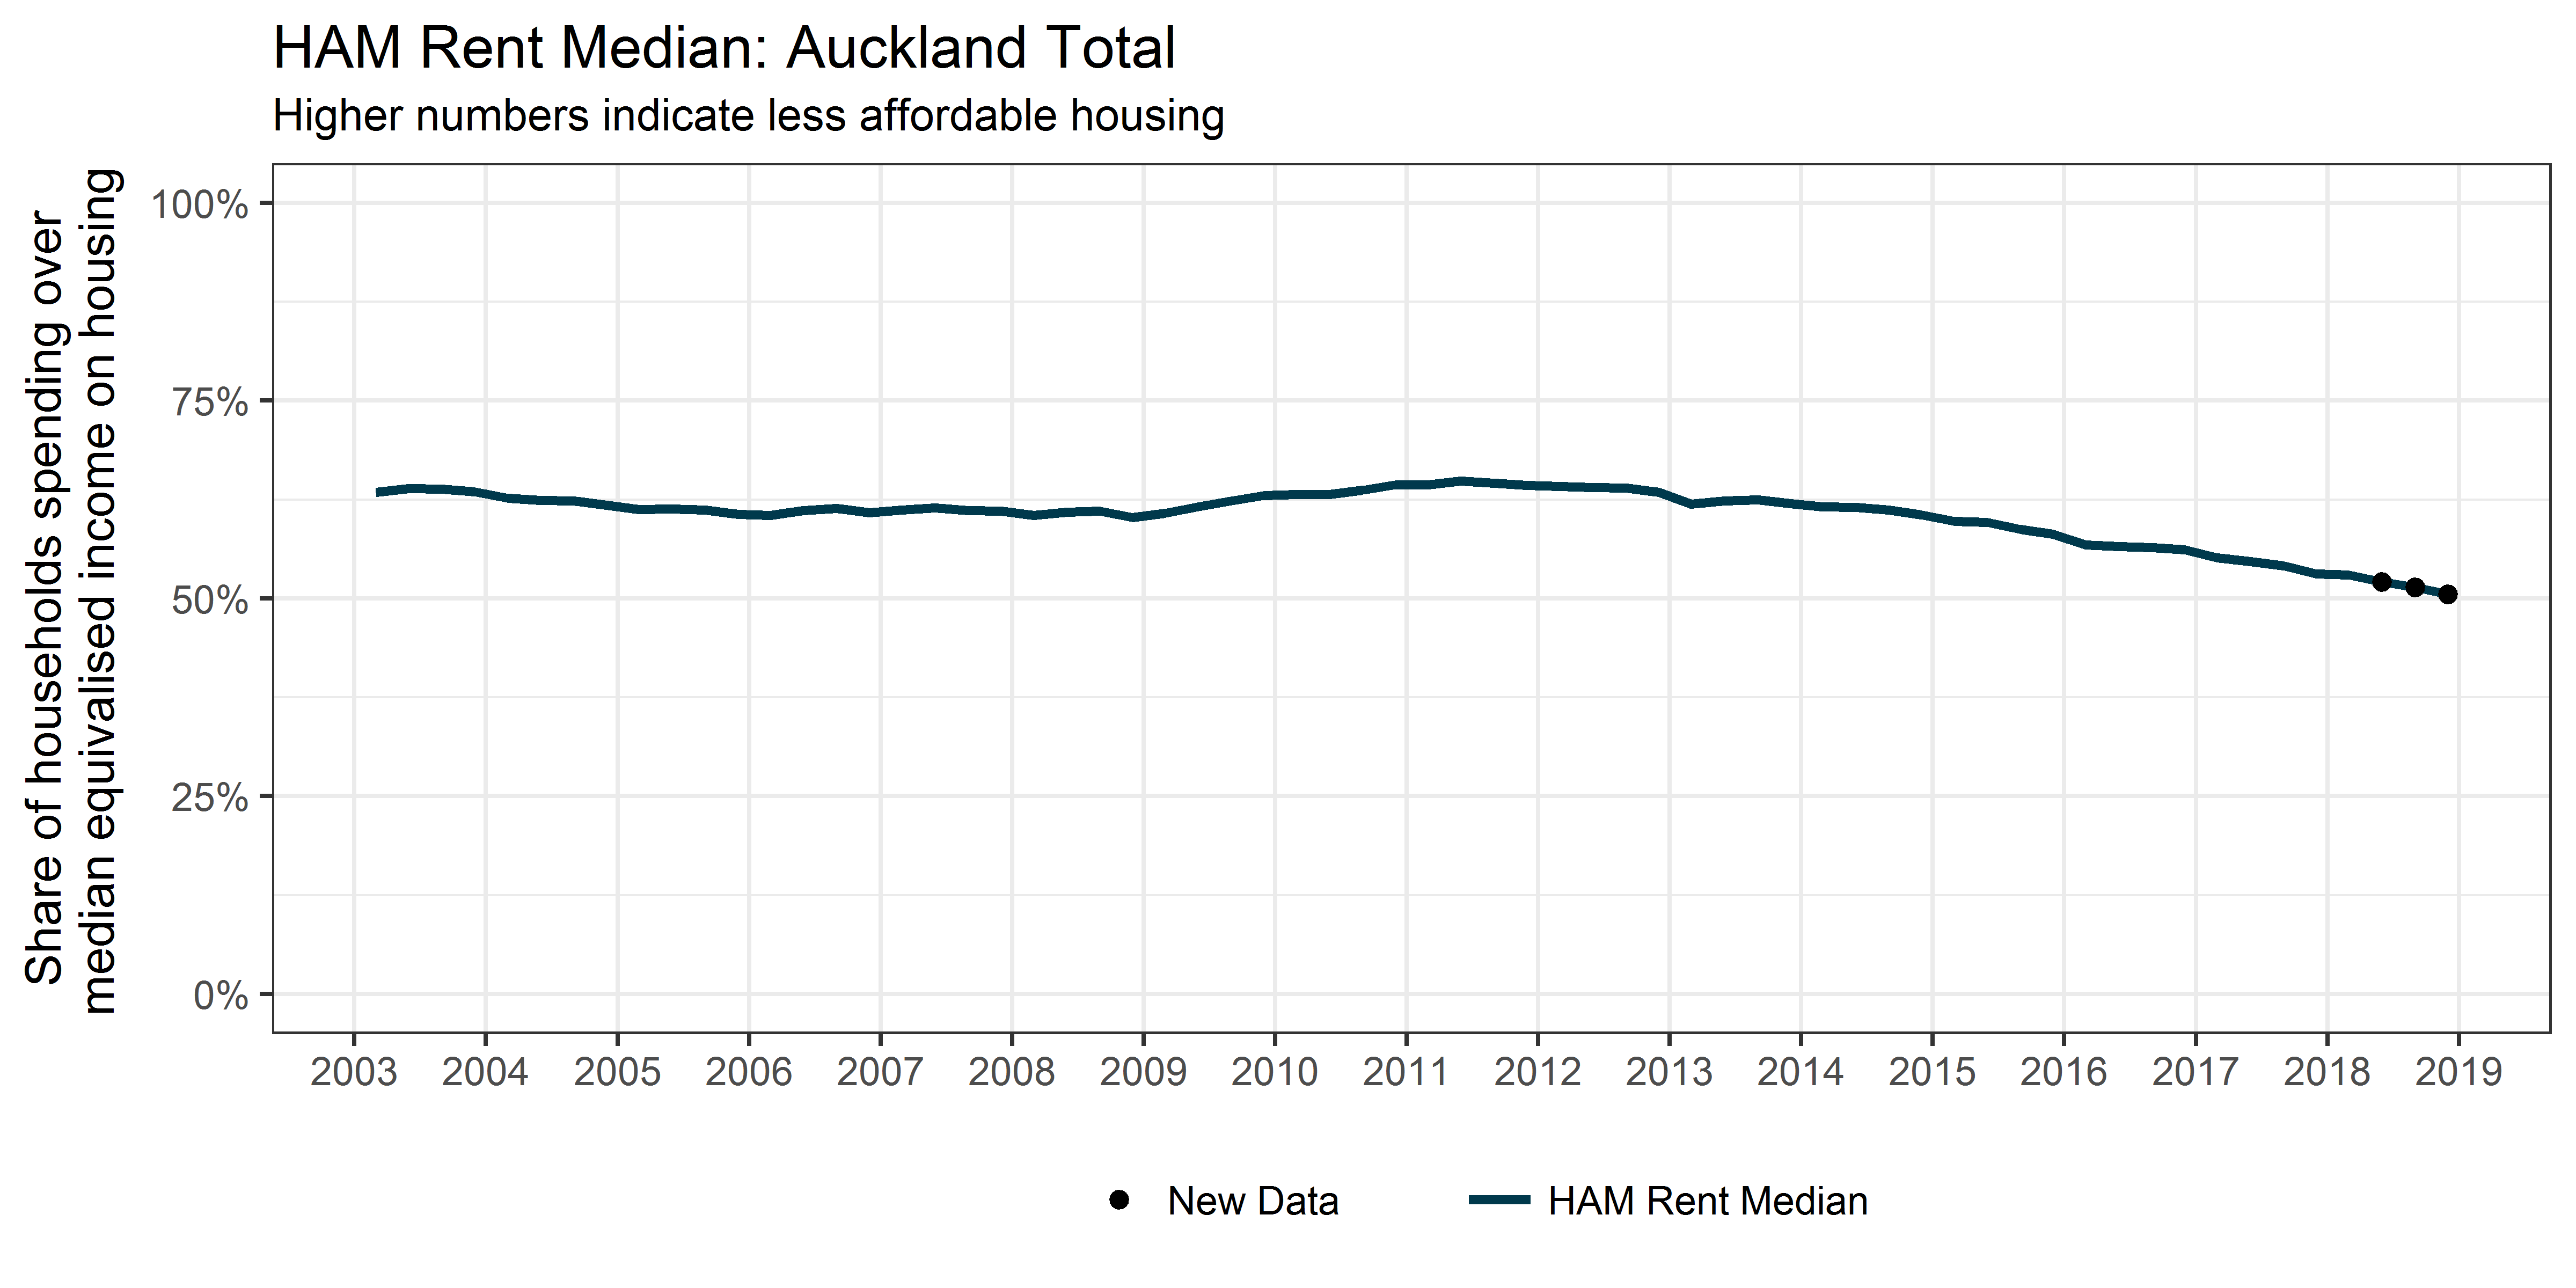 Figure 2: Share of renter (HAM Rent Median) households with below average incomes after housing costs, Auckland (March 2003 to December 2018)